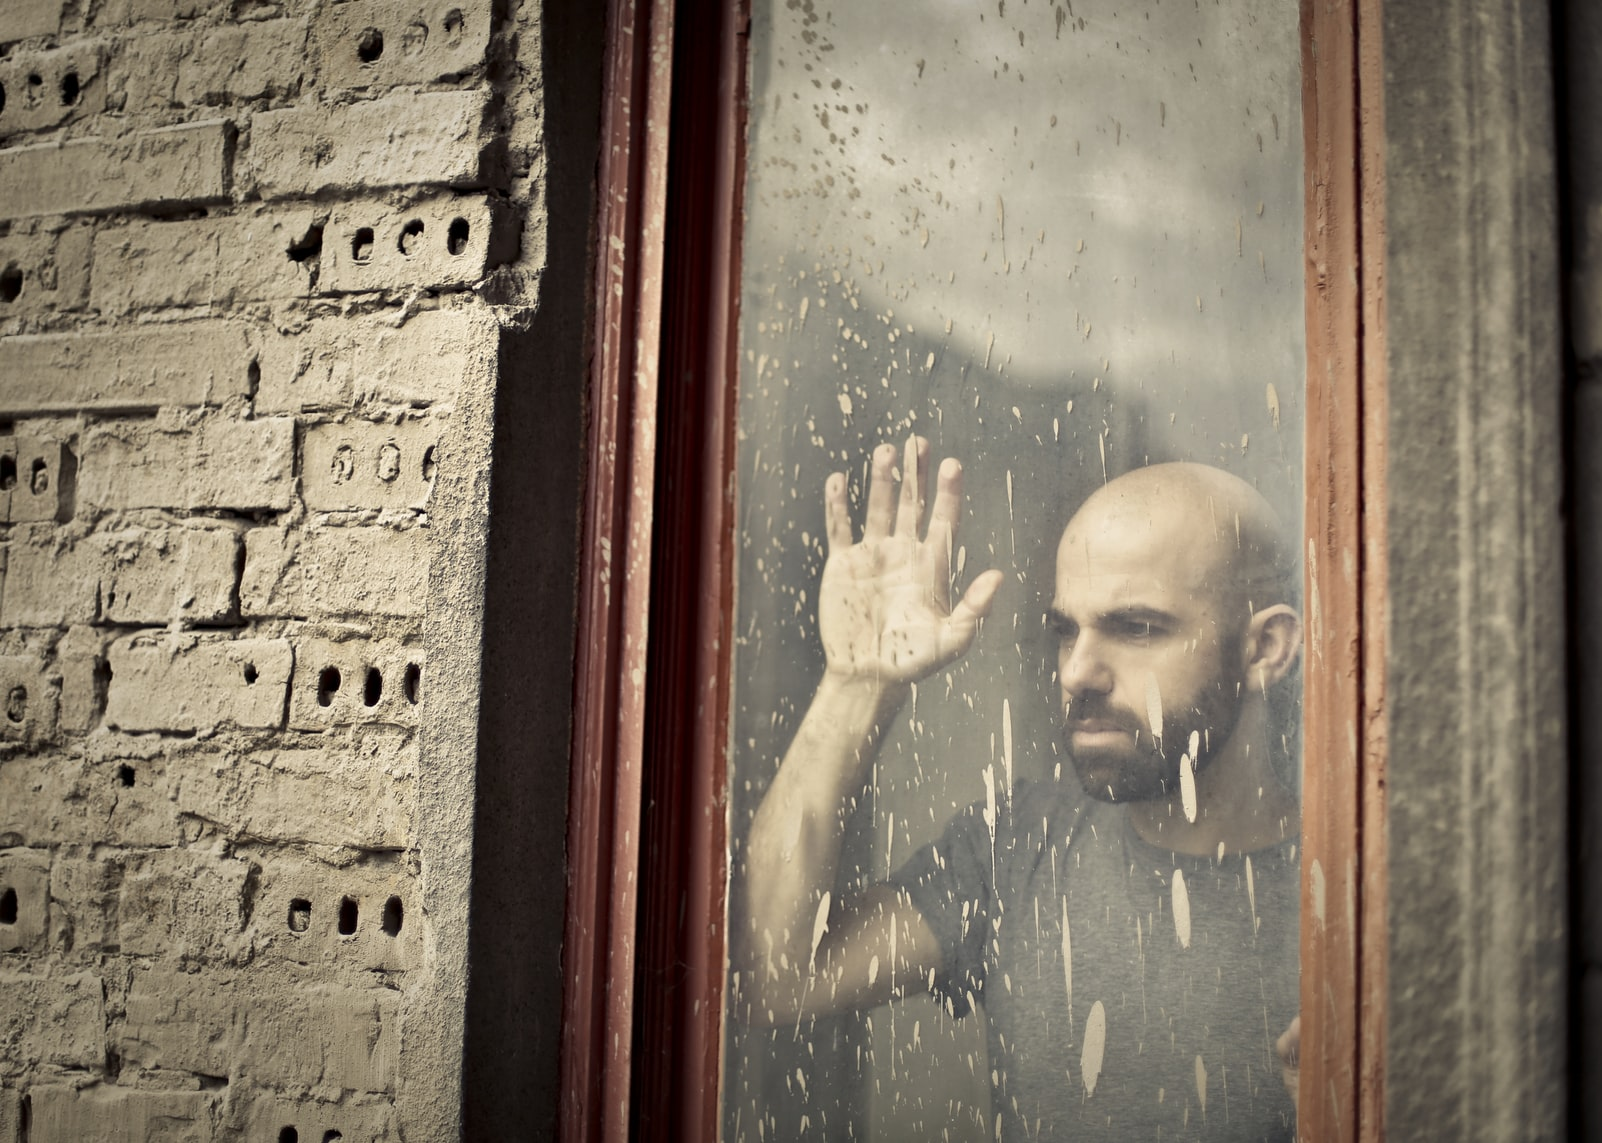 Worried bald man leaning and staring out of window